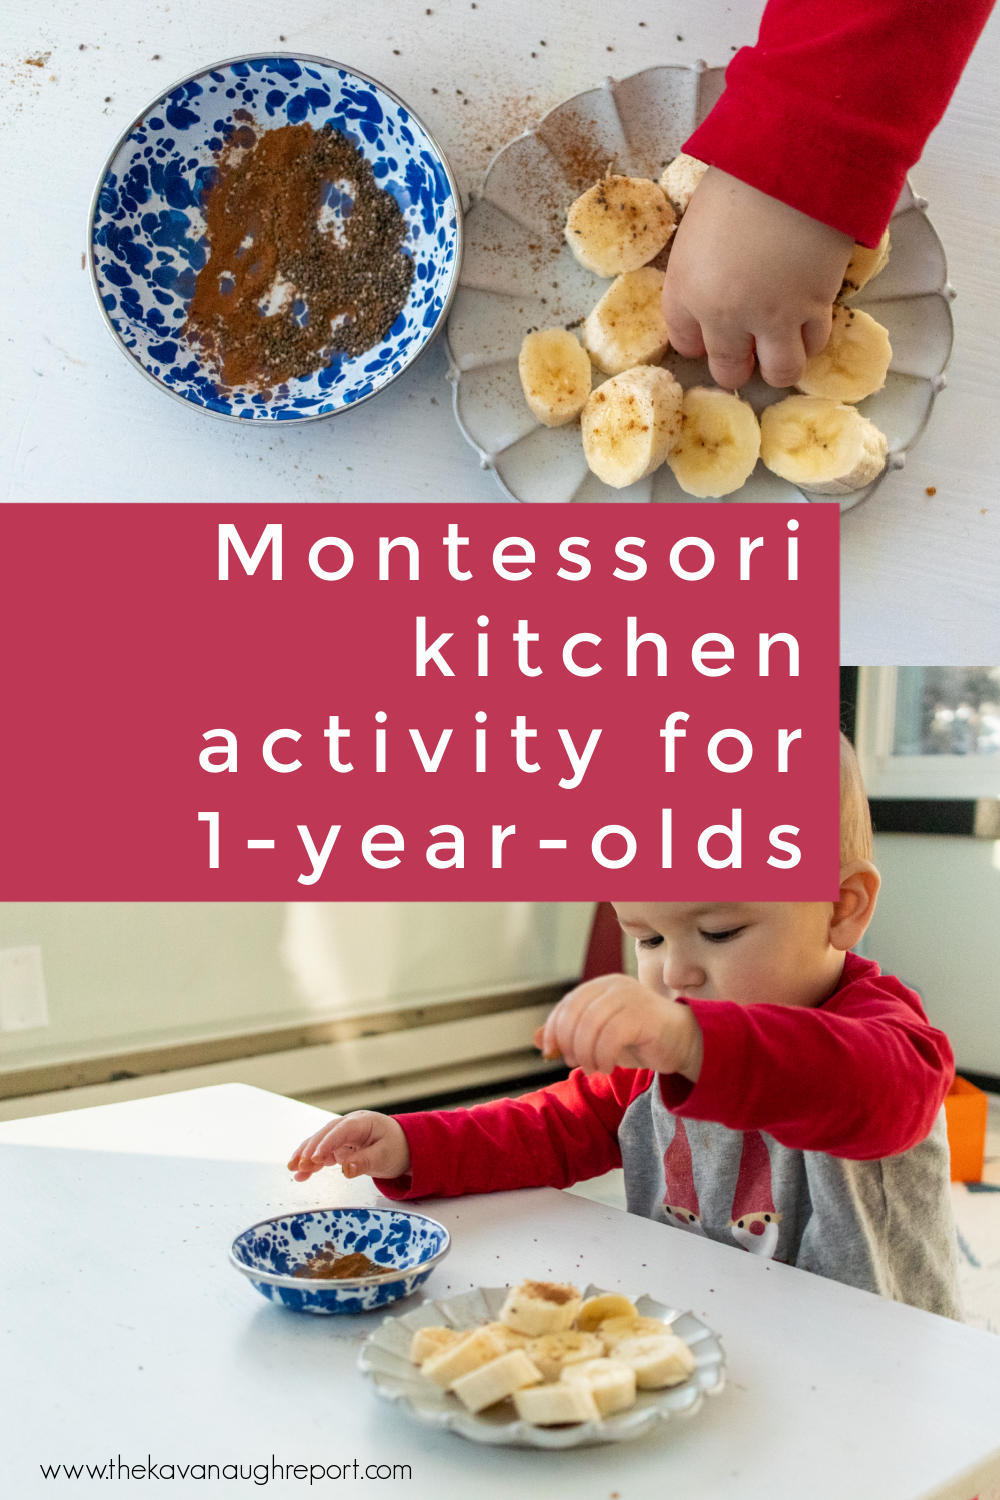 This simple Montessori kitchen activity is perfect for 1-year-olds. Here is one easy way to help your Montessori toddler get into practical life work!